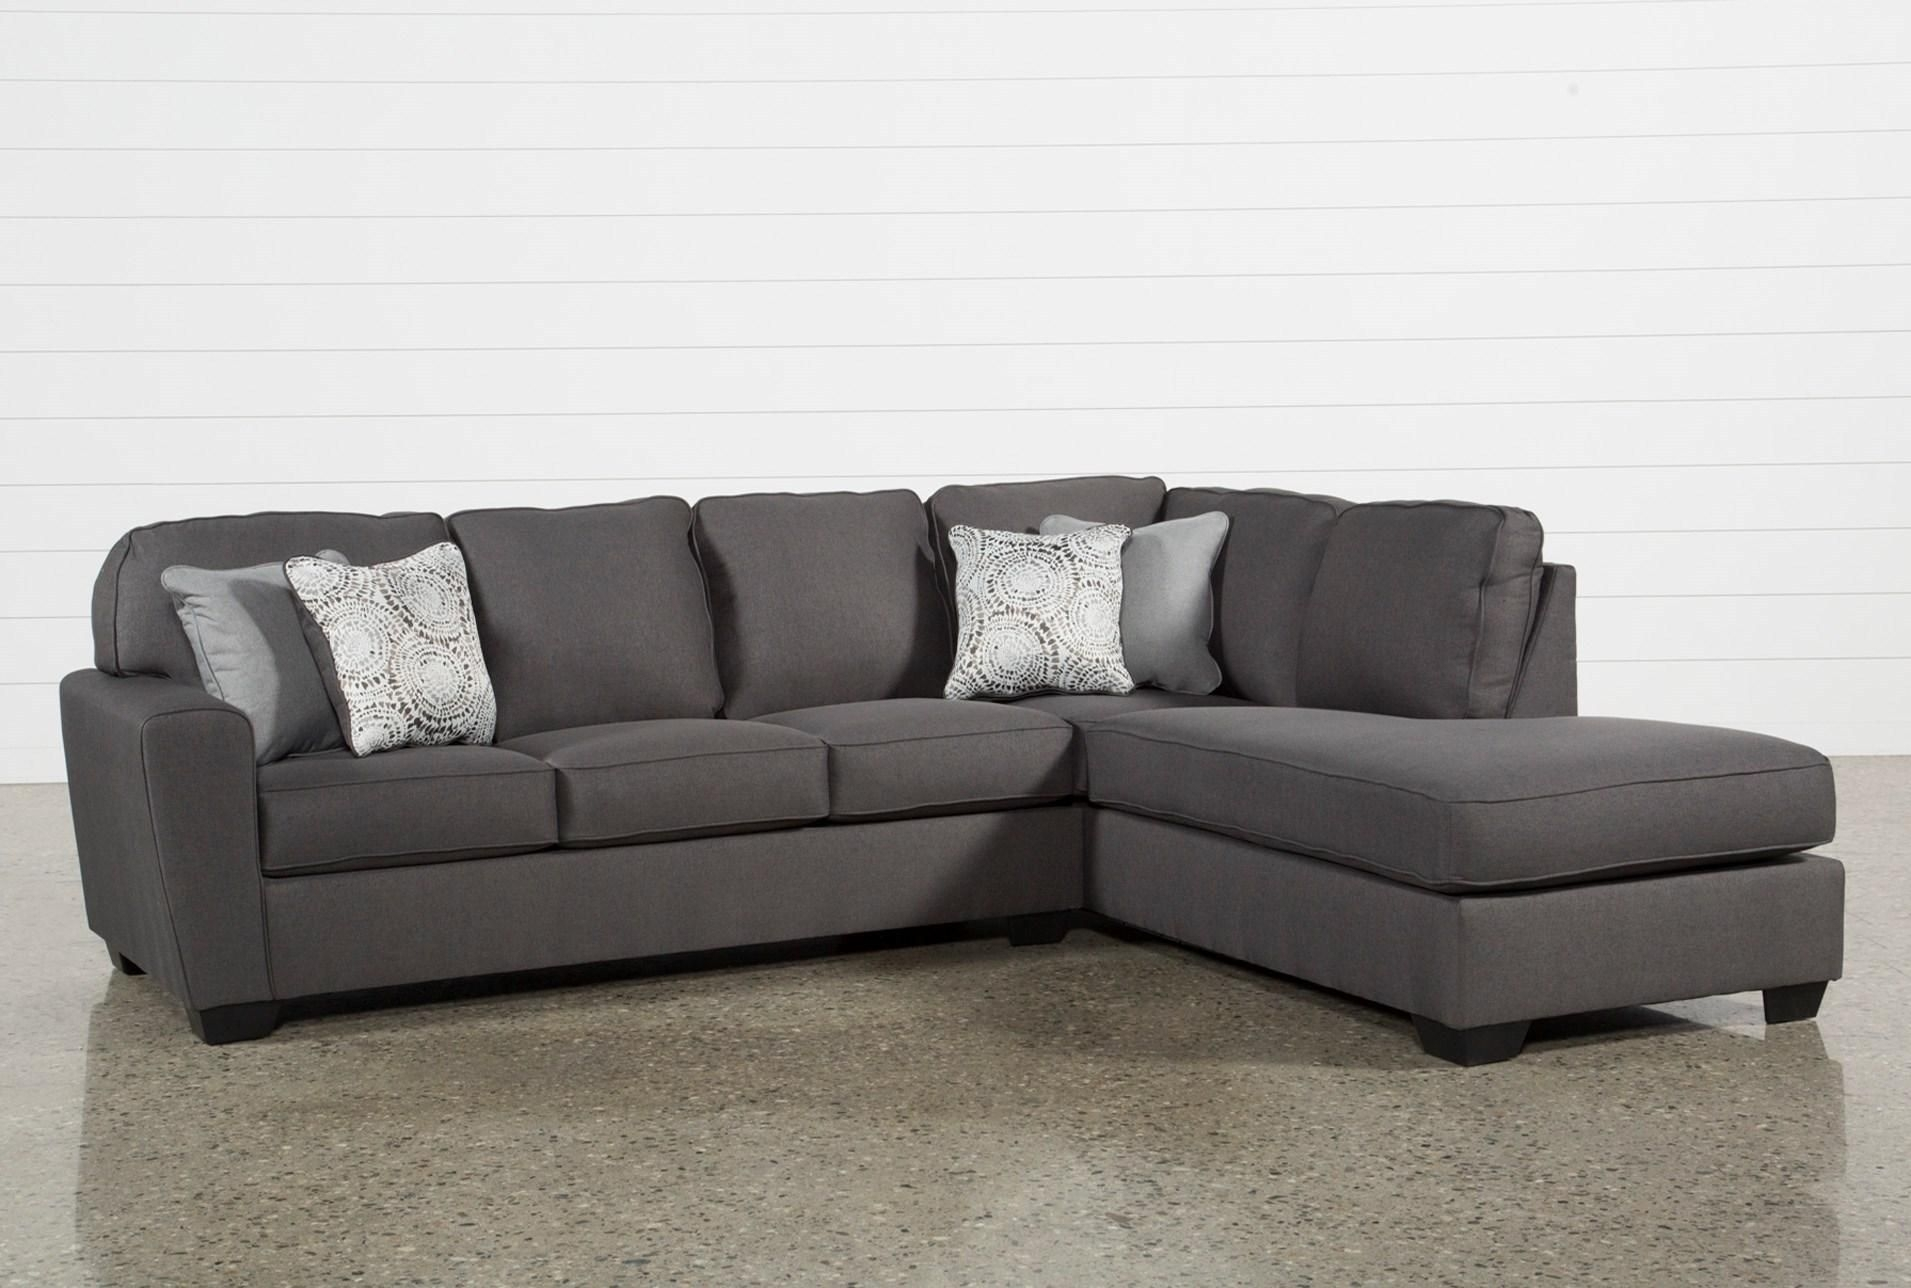 Mcdade Graphite 2 Piece Sectional W/raf Chaise | Livingroom Intended For Arrowmask 2 Piece Sectionals With Sleeper & Left Facing Chaise (View 21 of 25)